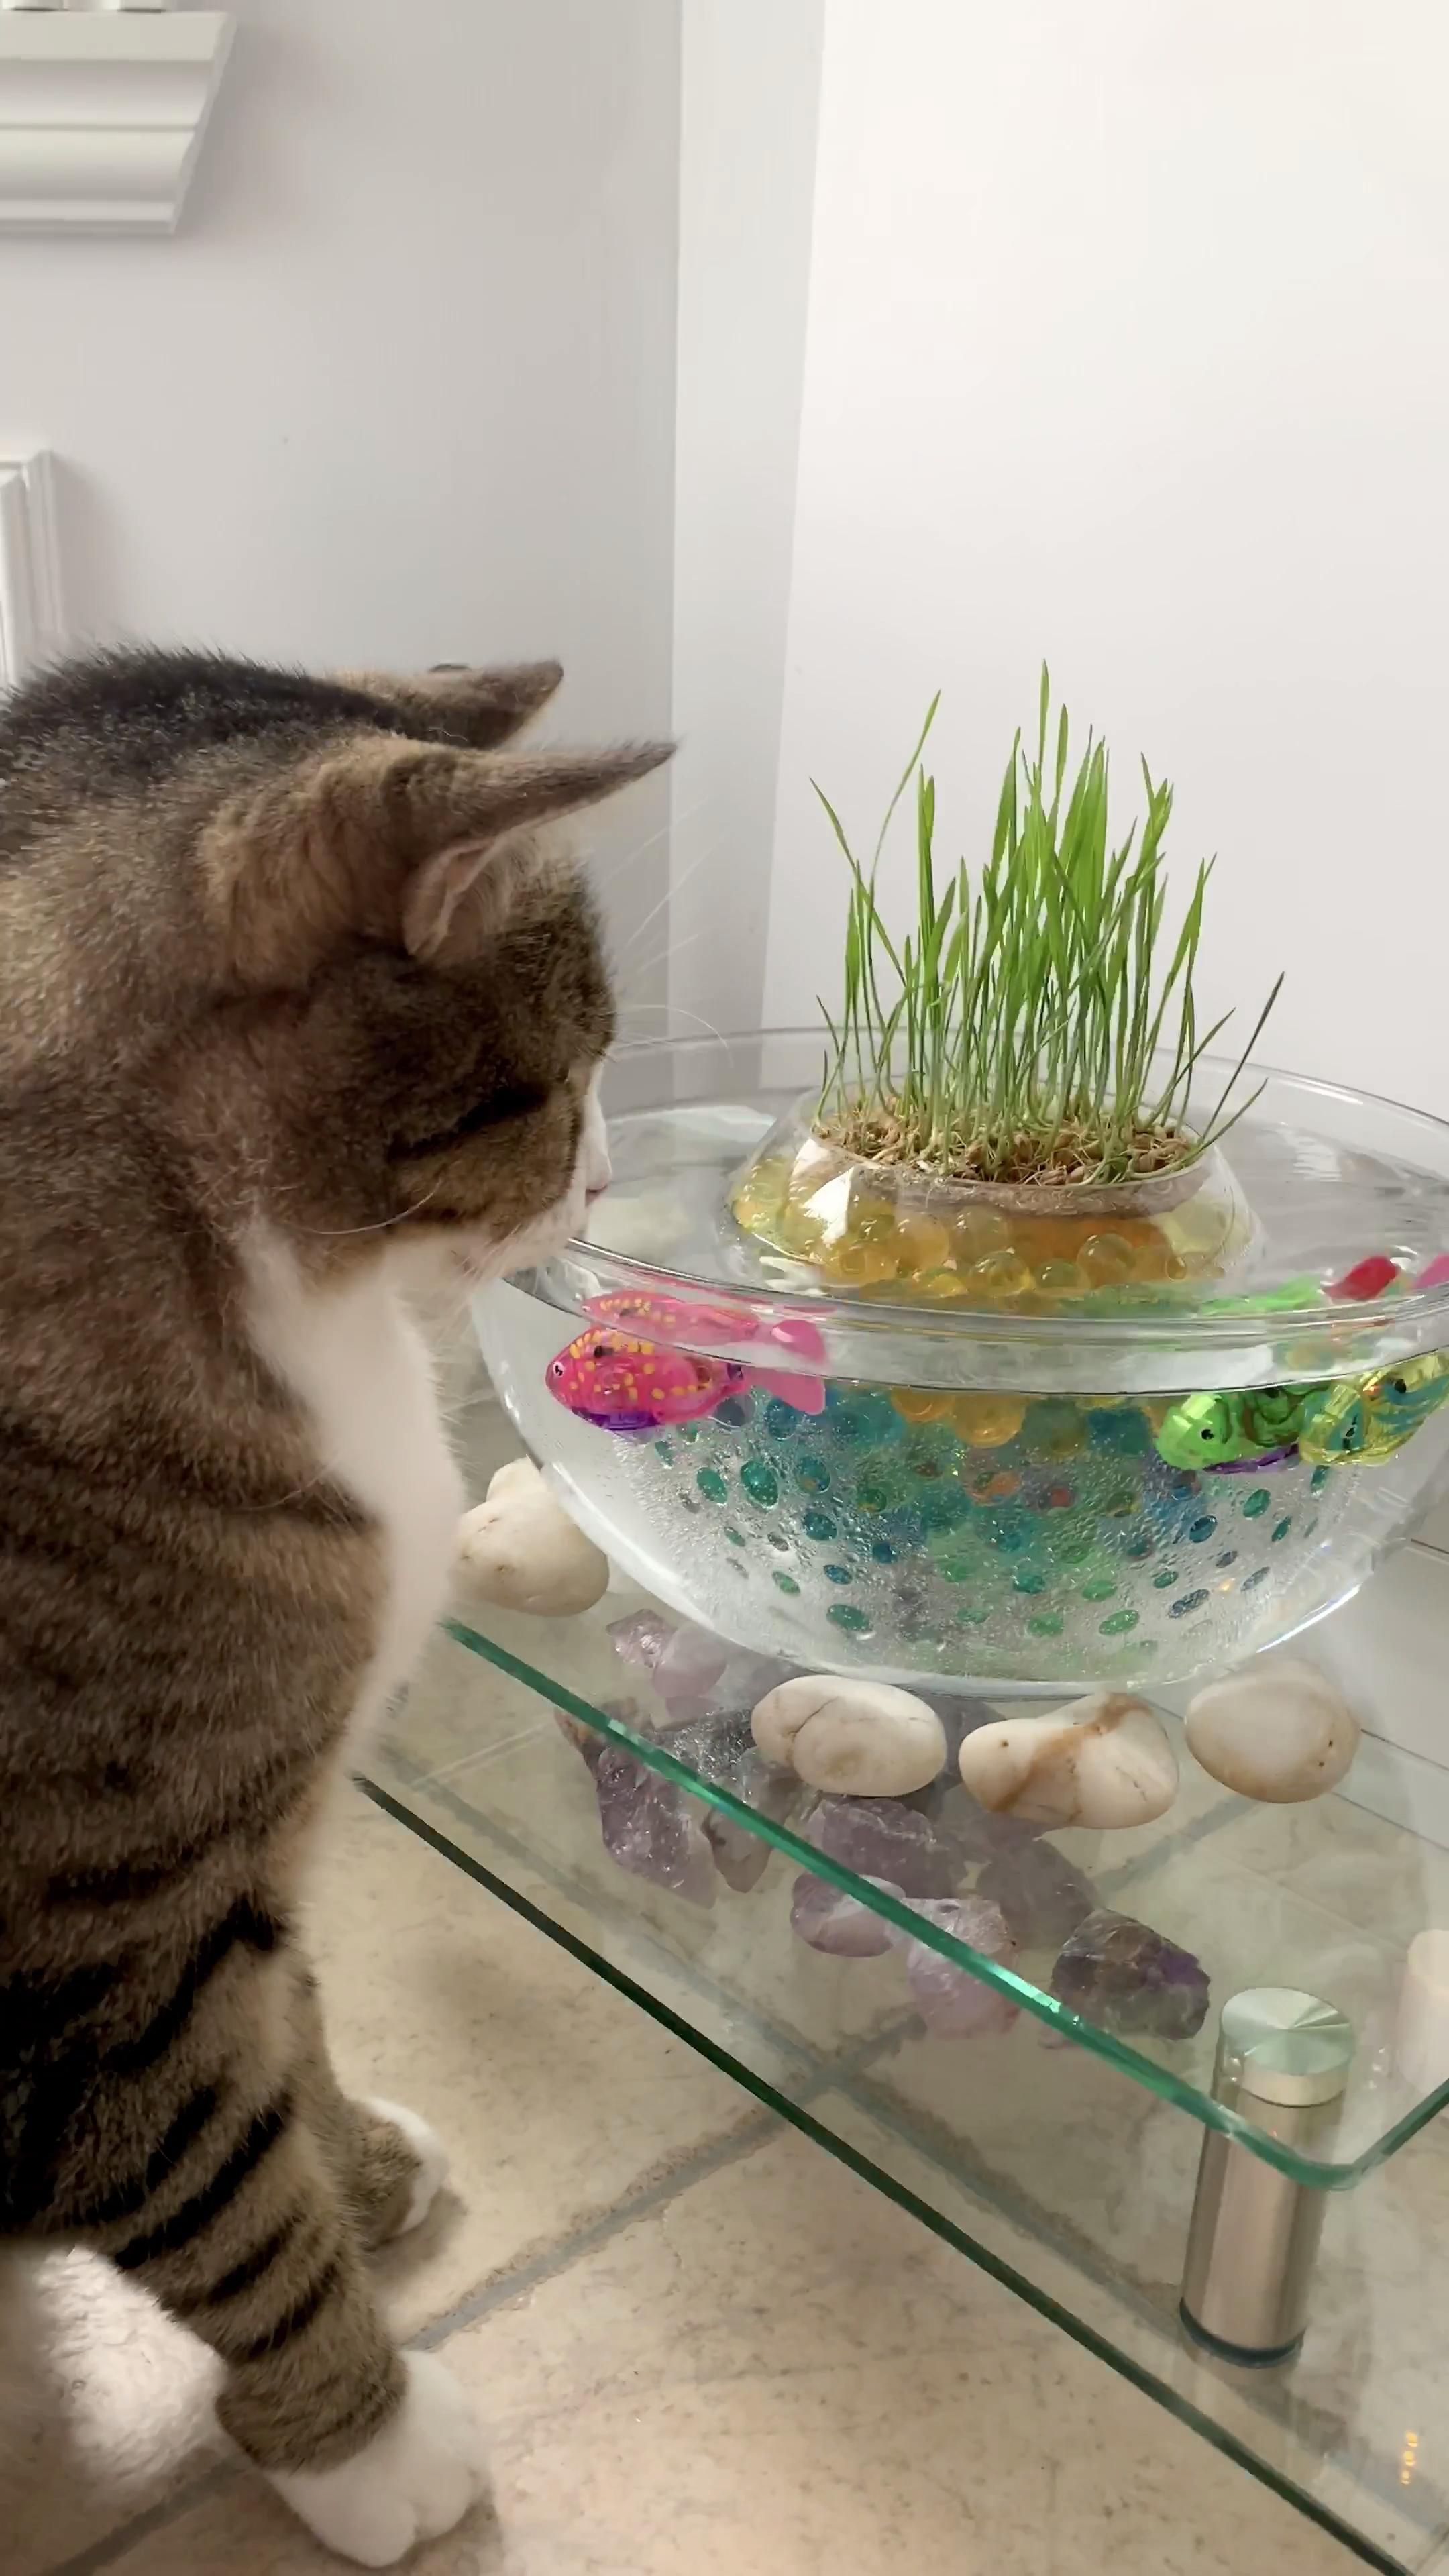 This simple and beautiful cat grass pond is easy to set up. Grow the cat grass in water beads instead of soil. Add robot fish to engage your cat in interactive play while keeping your cat hydrated. Embellish with river rocks or crystals for positive and calming zen. The perfect interactive enrichment salad bar for bored kitties!